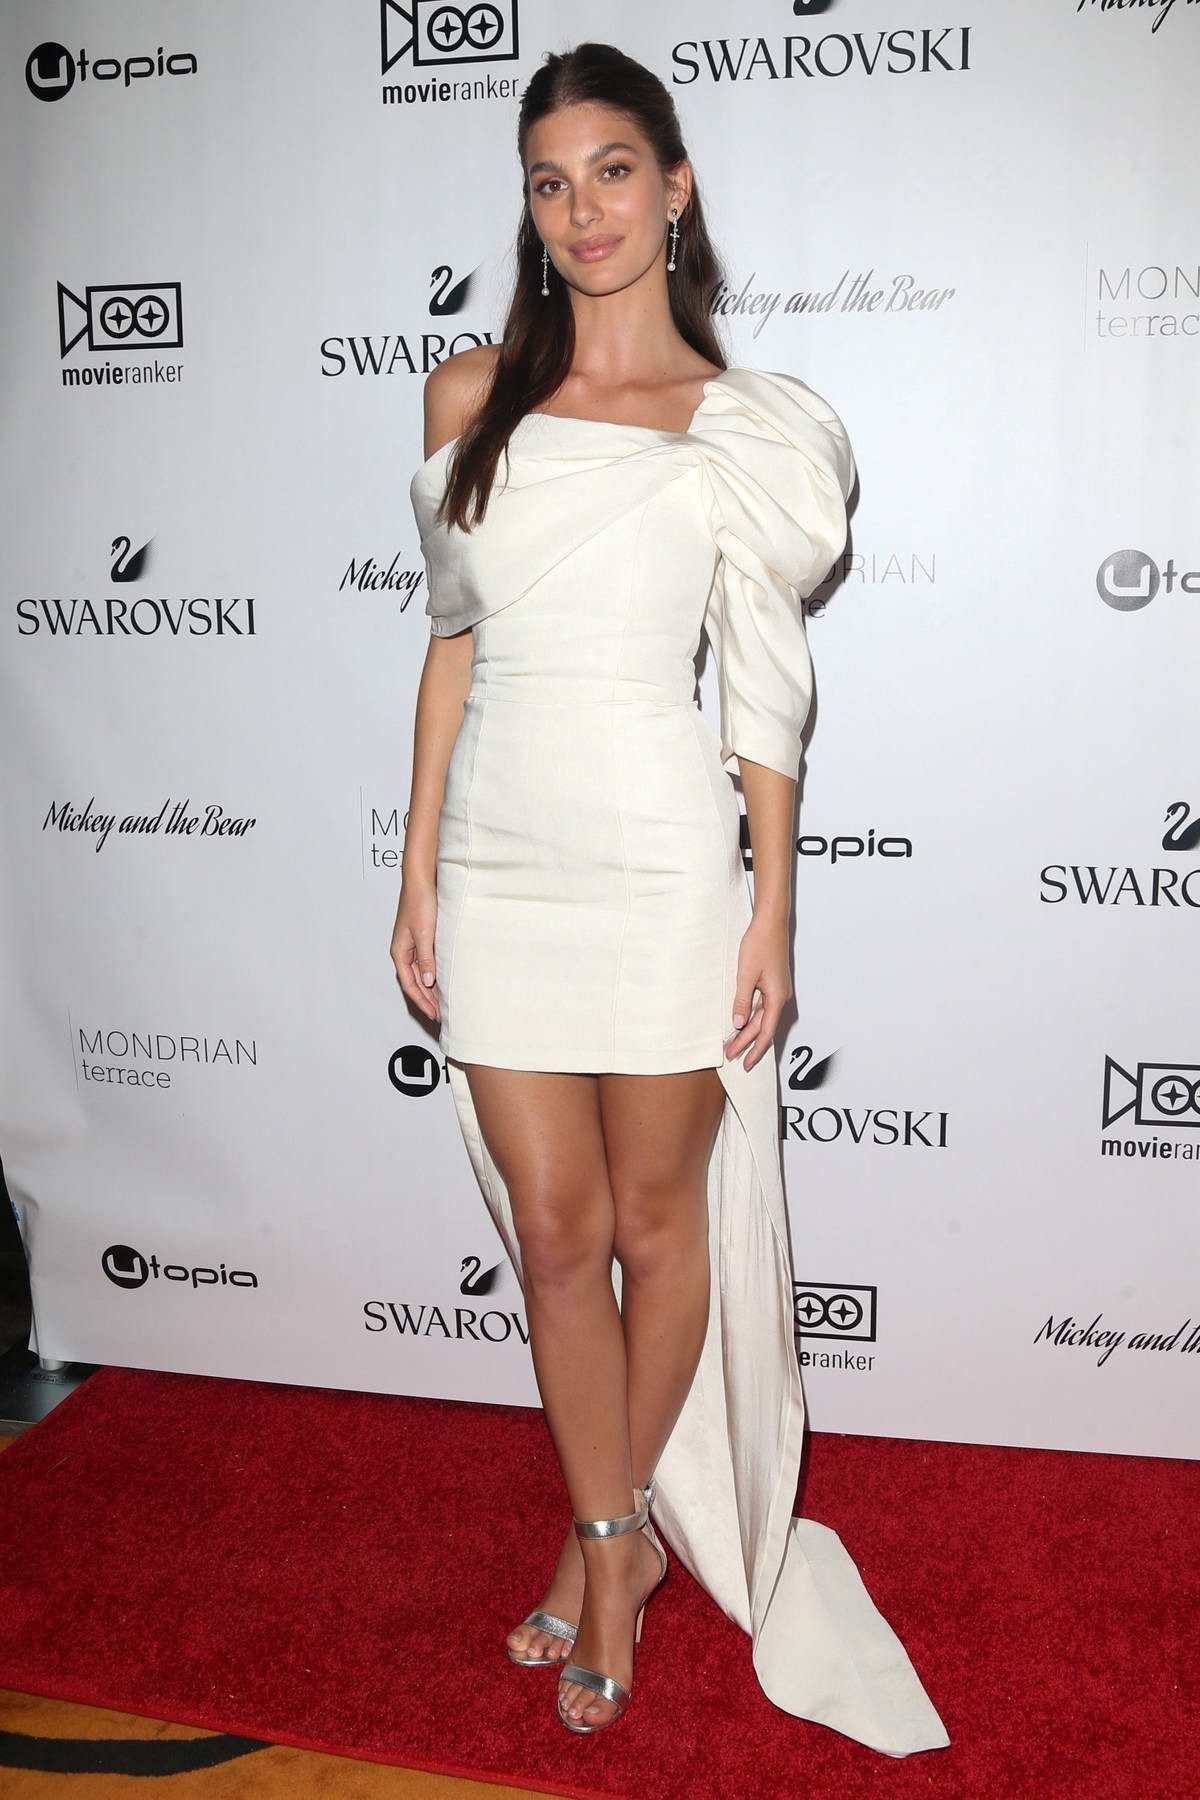 Camila Morrone attends the New York Premiere of 'Mickey and the Bear' at Mondrian Park Avenue in New York City